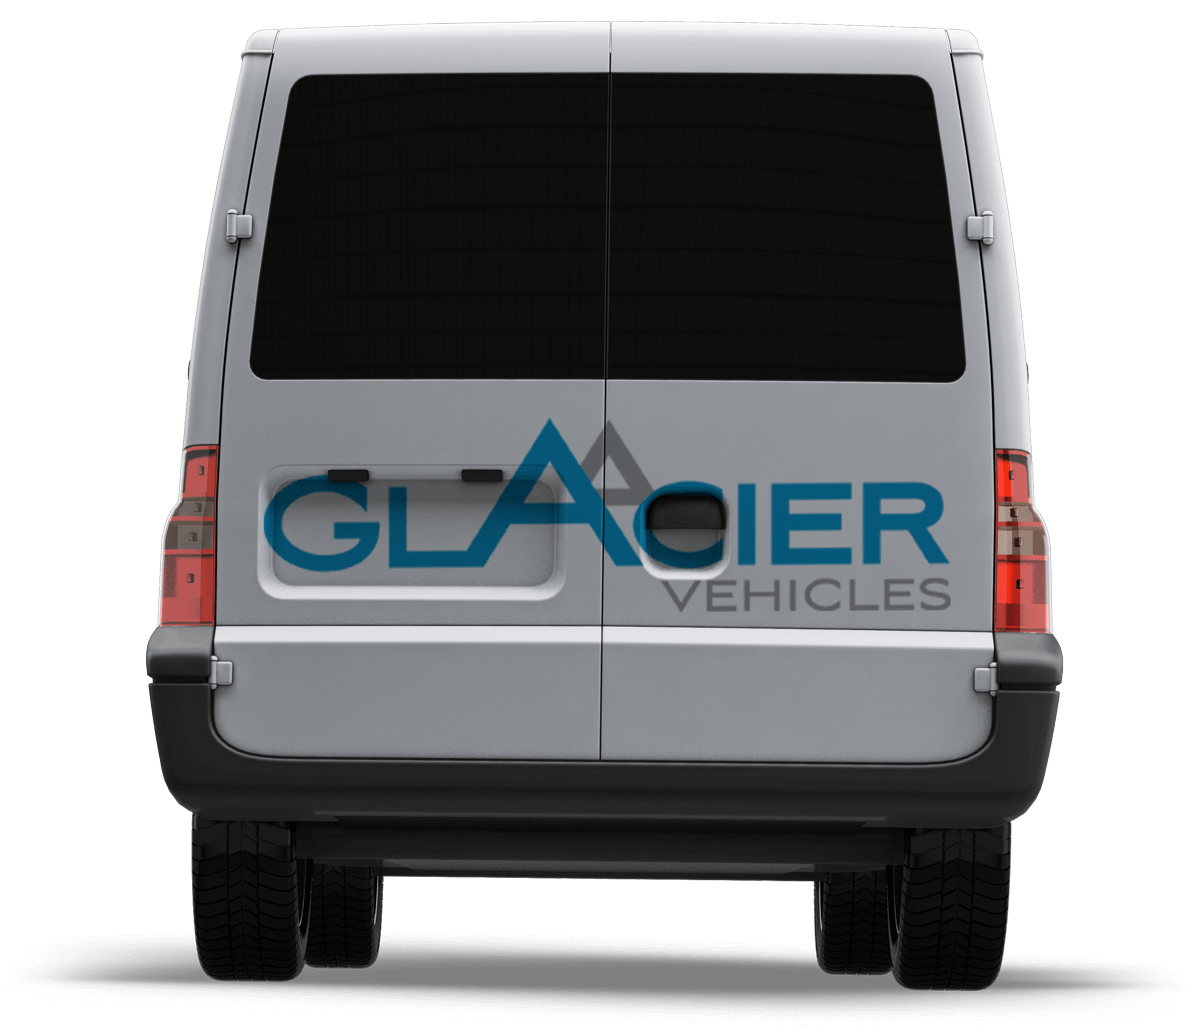 Glacier vehicle